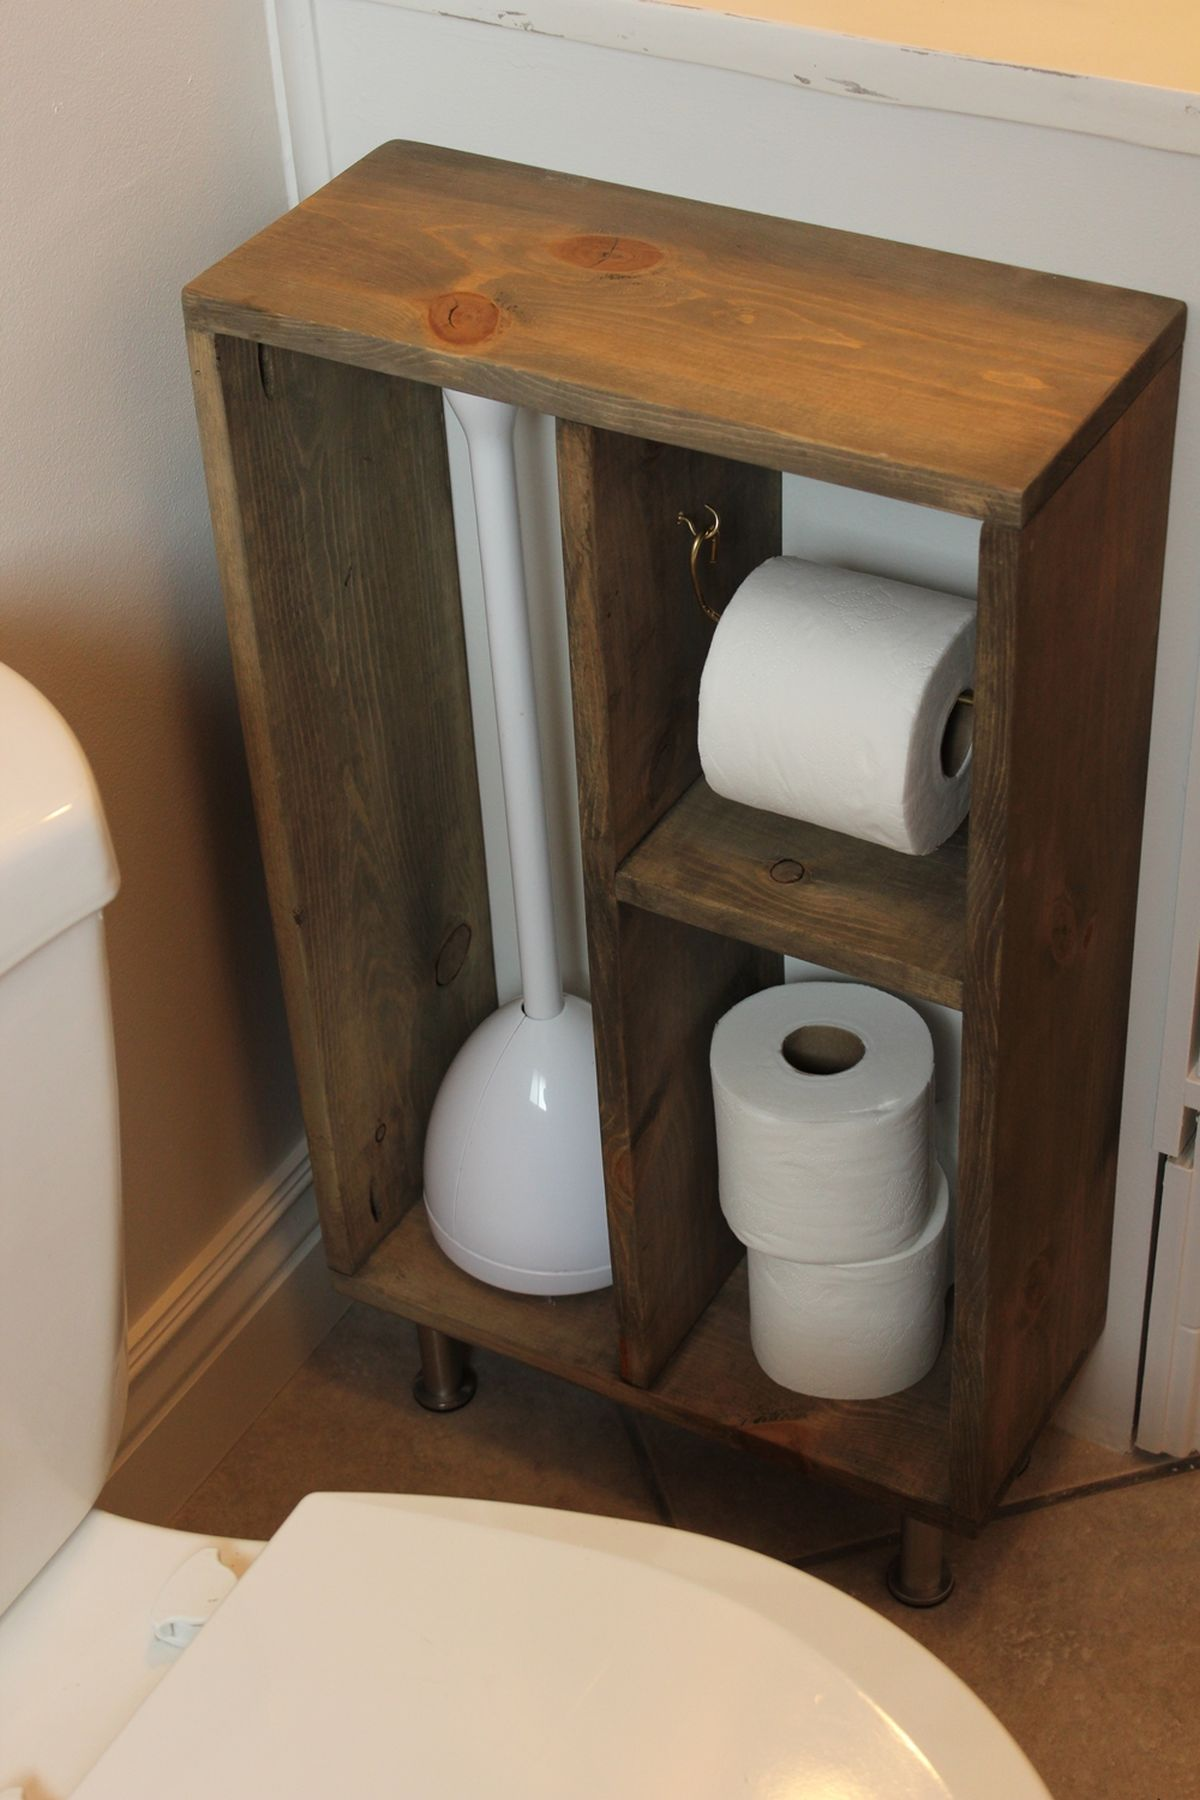 Concealed Toilet Paper Holder Diy Simple Brass Toilet Paper Holder